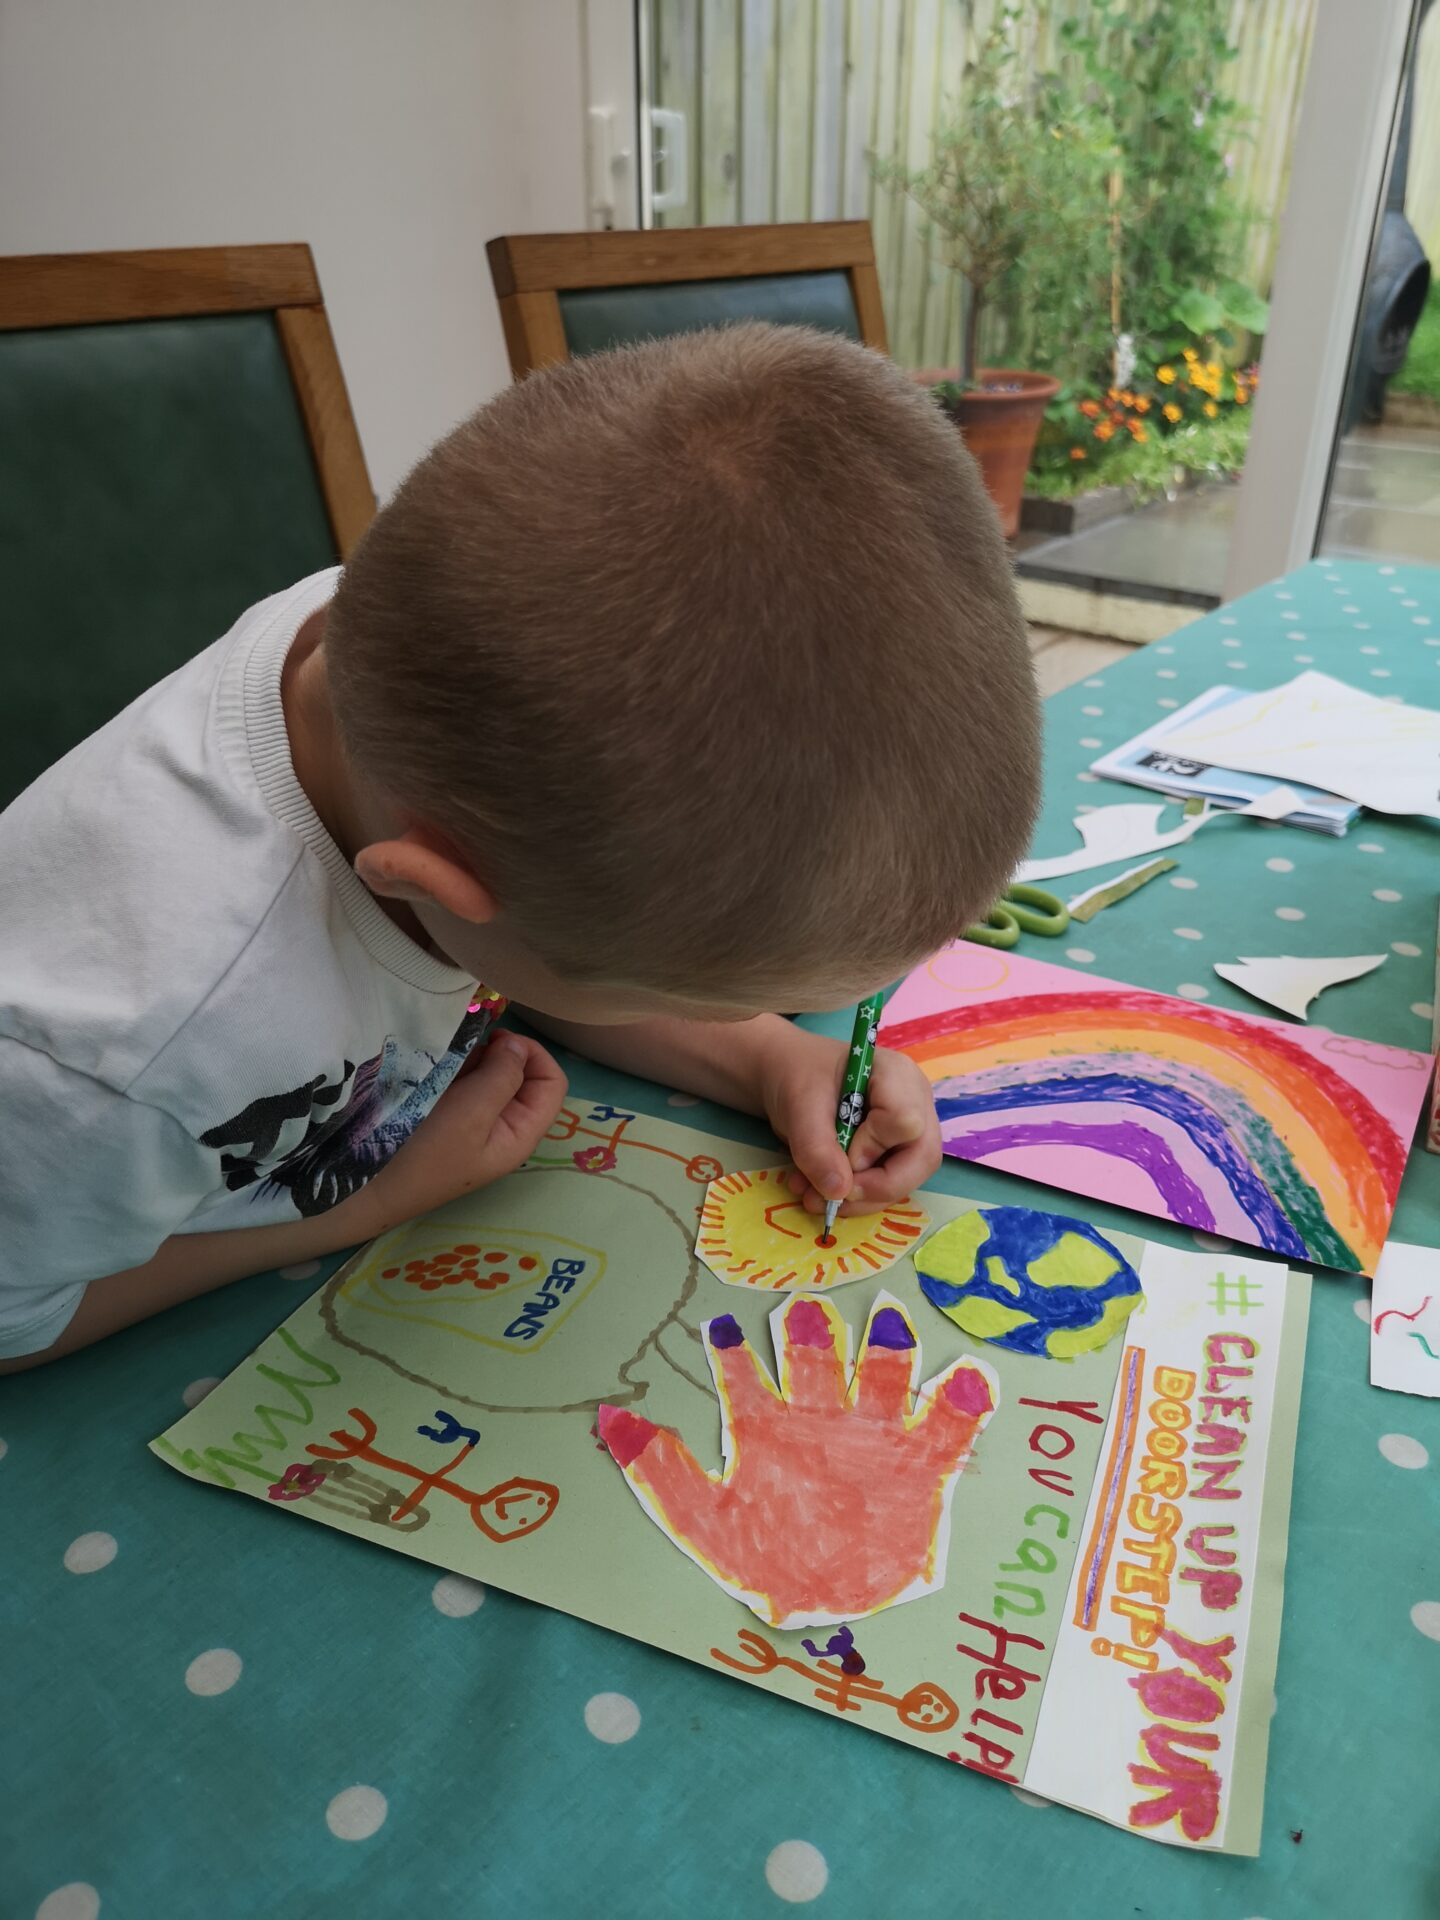 small child colouring a poster